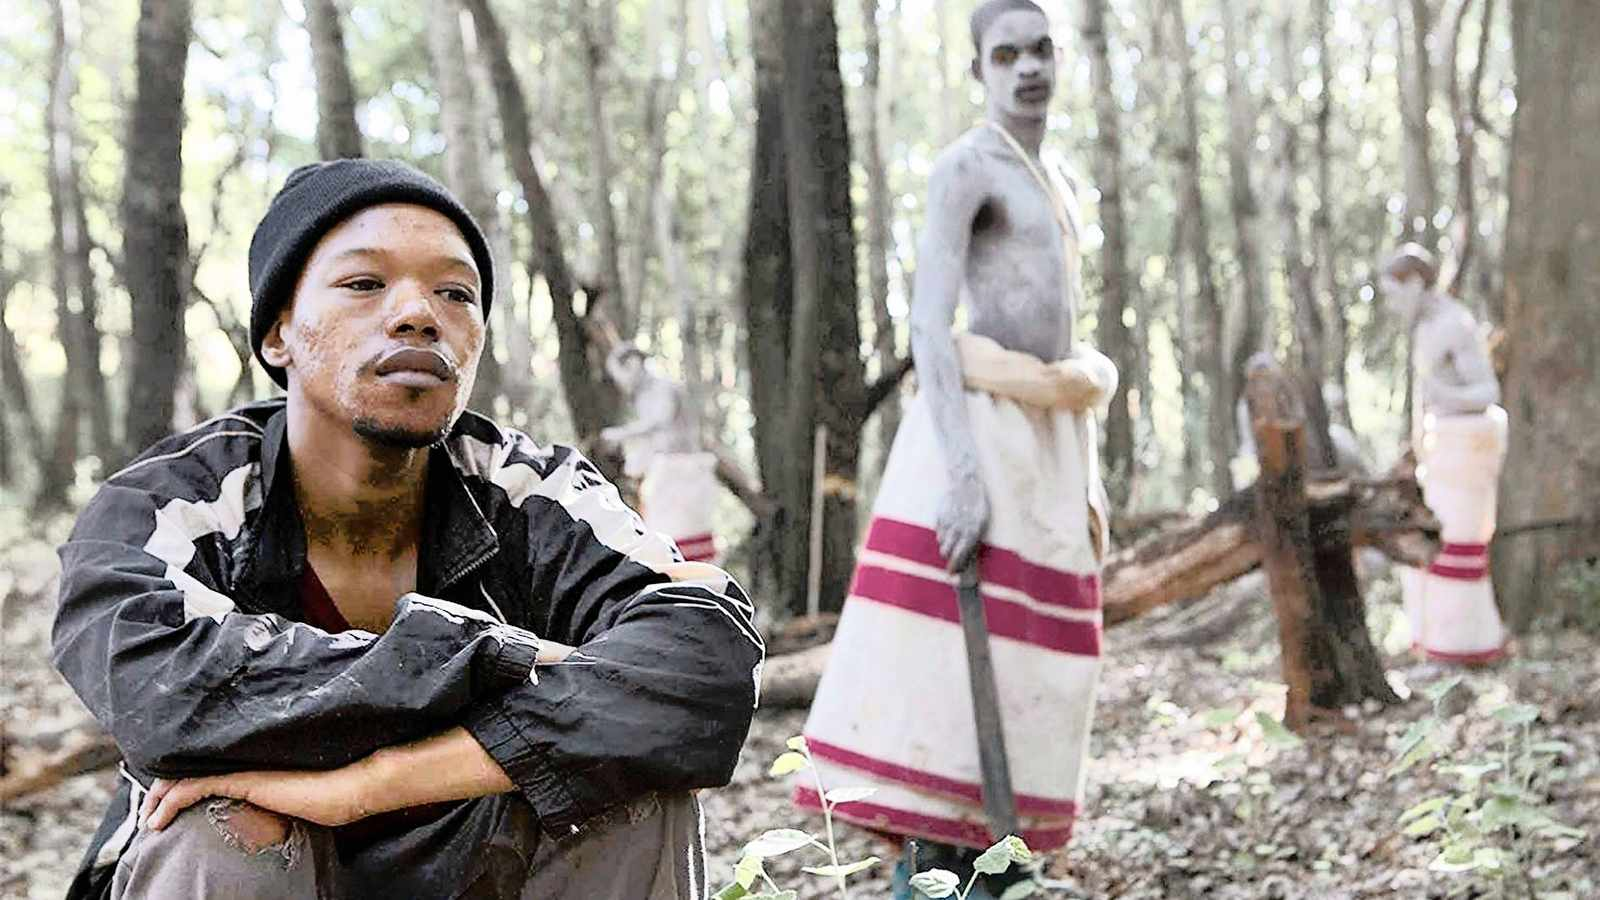 Inxeba as afroporn from outer space